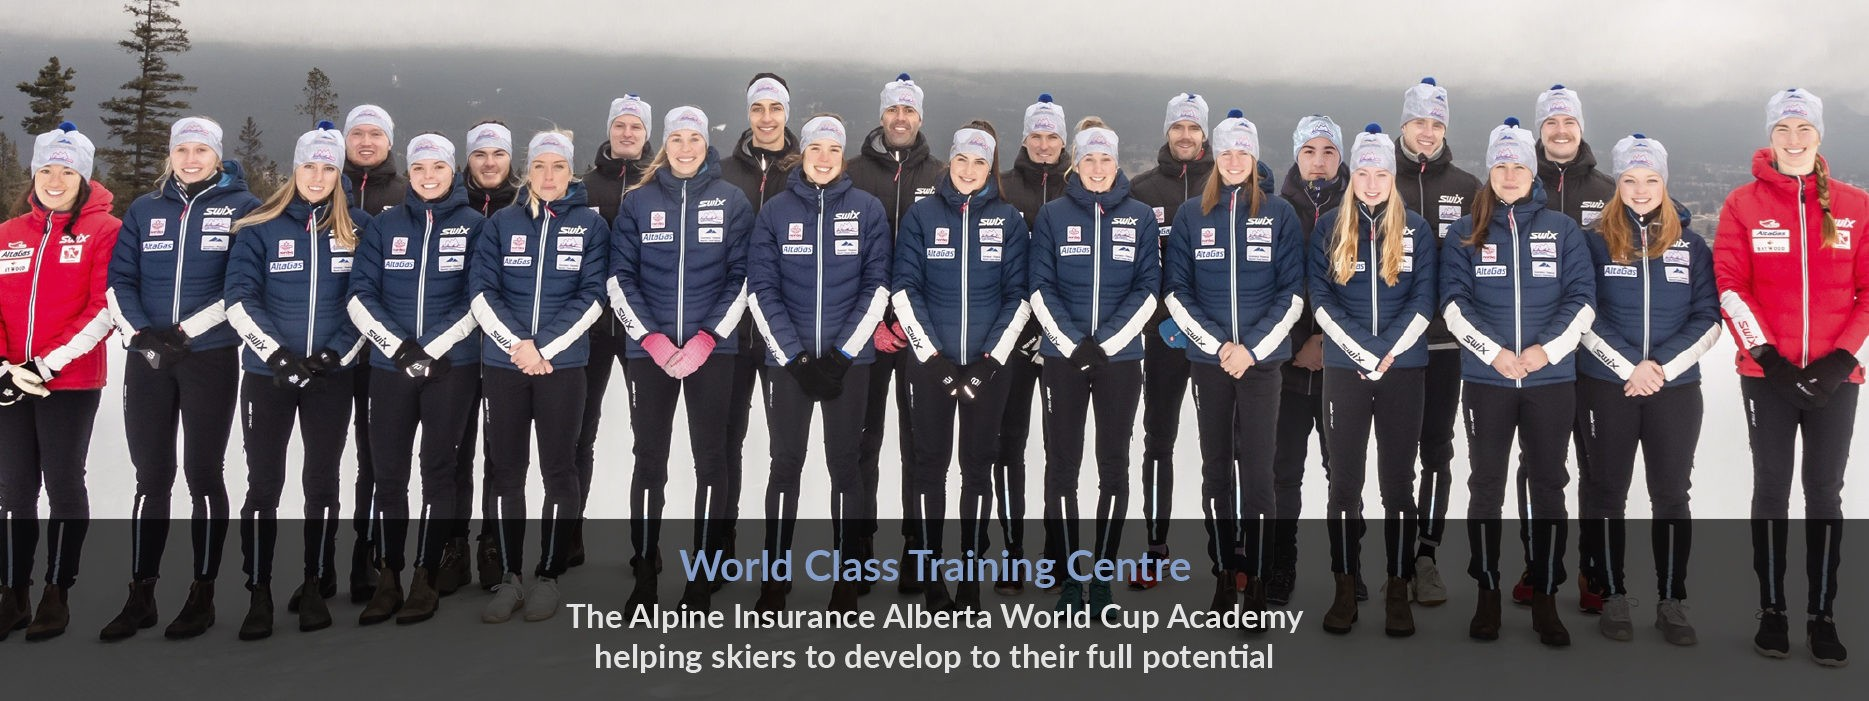 Alberta World Cup Academy Team 2020